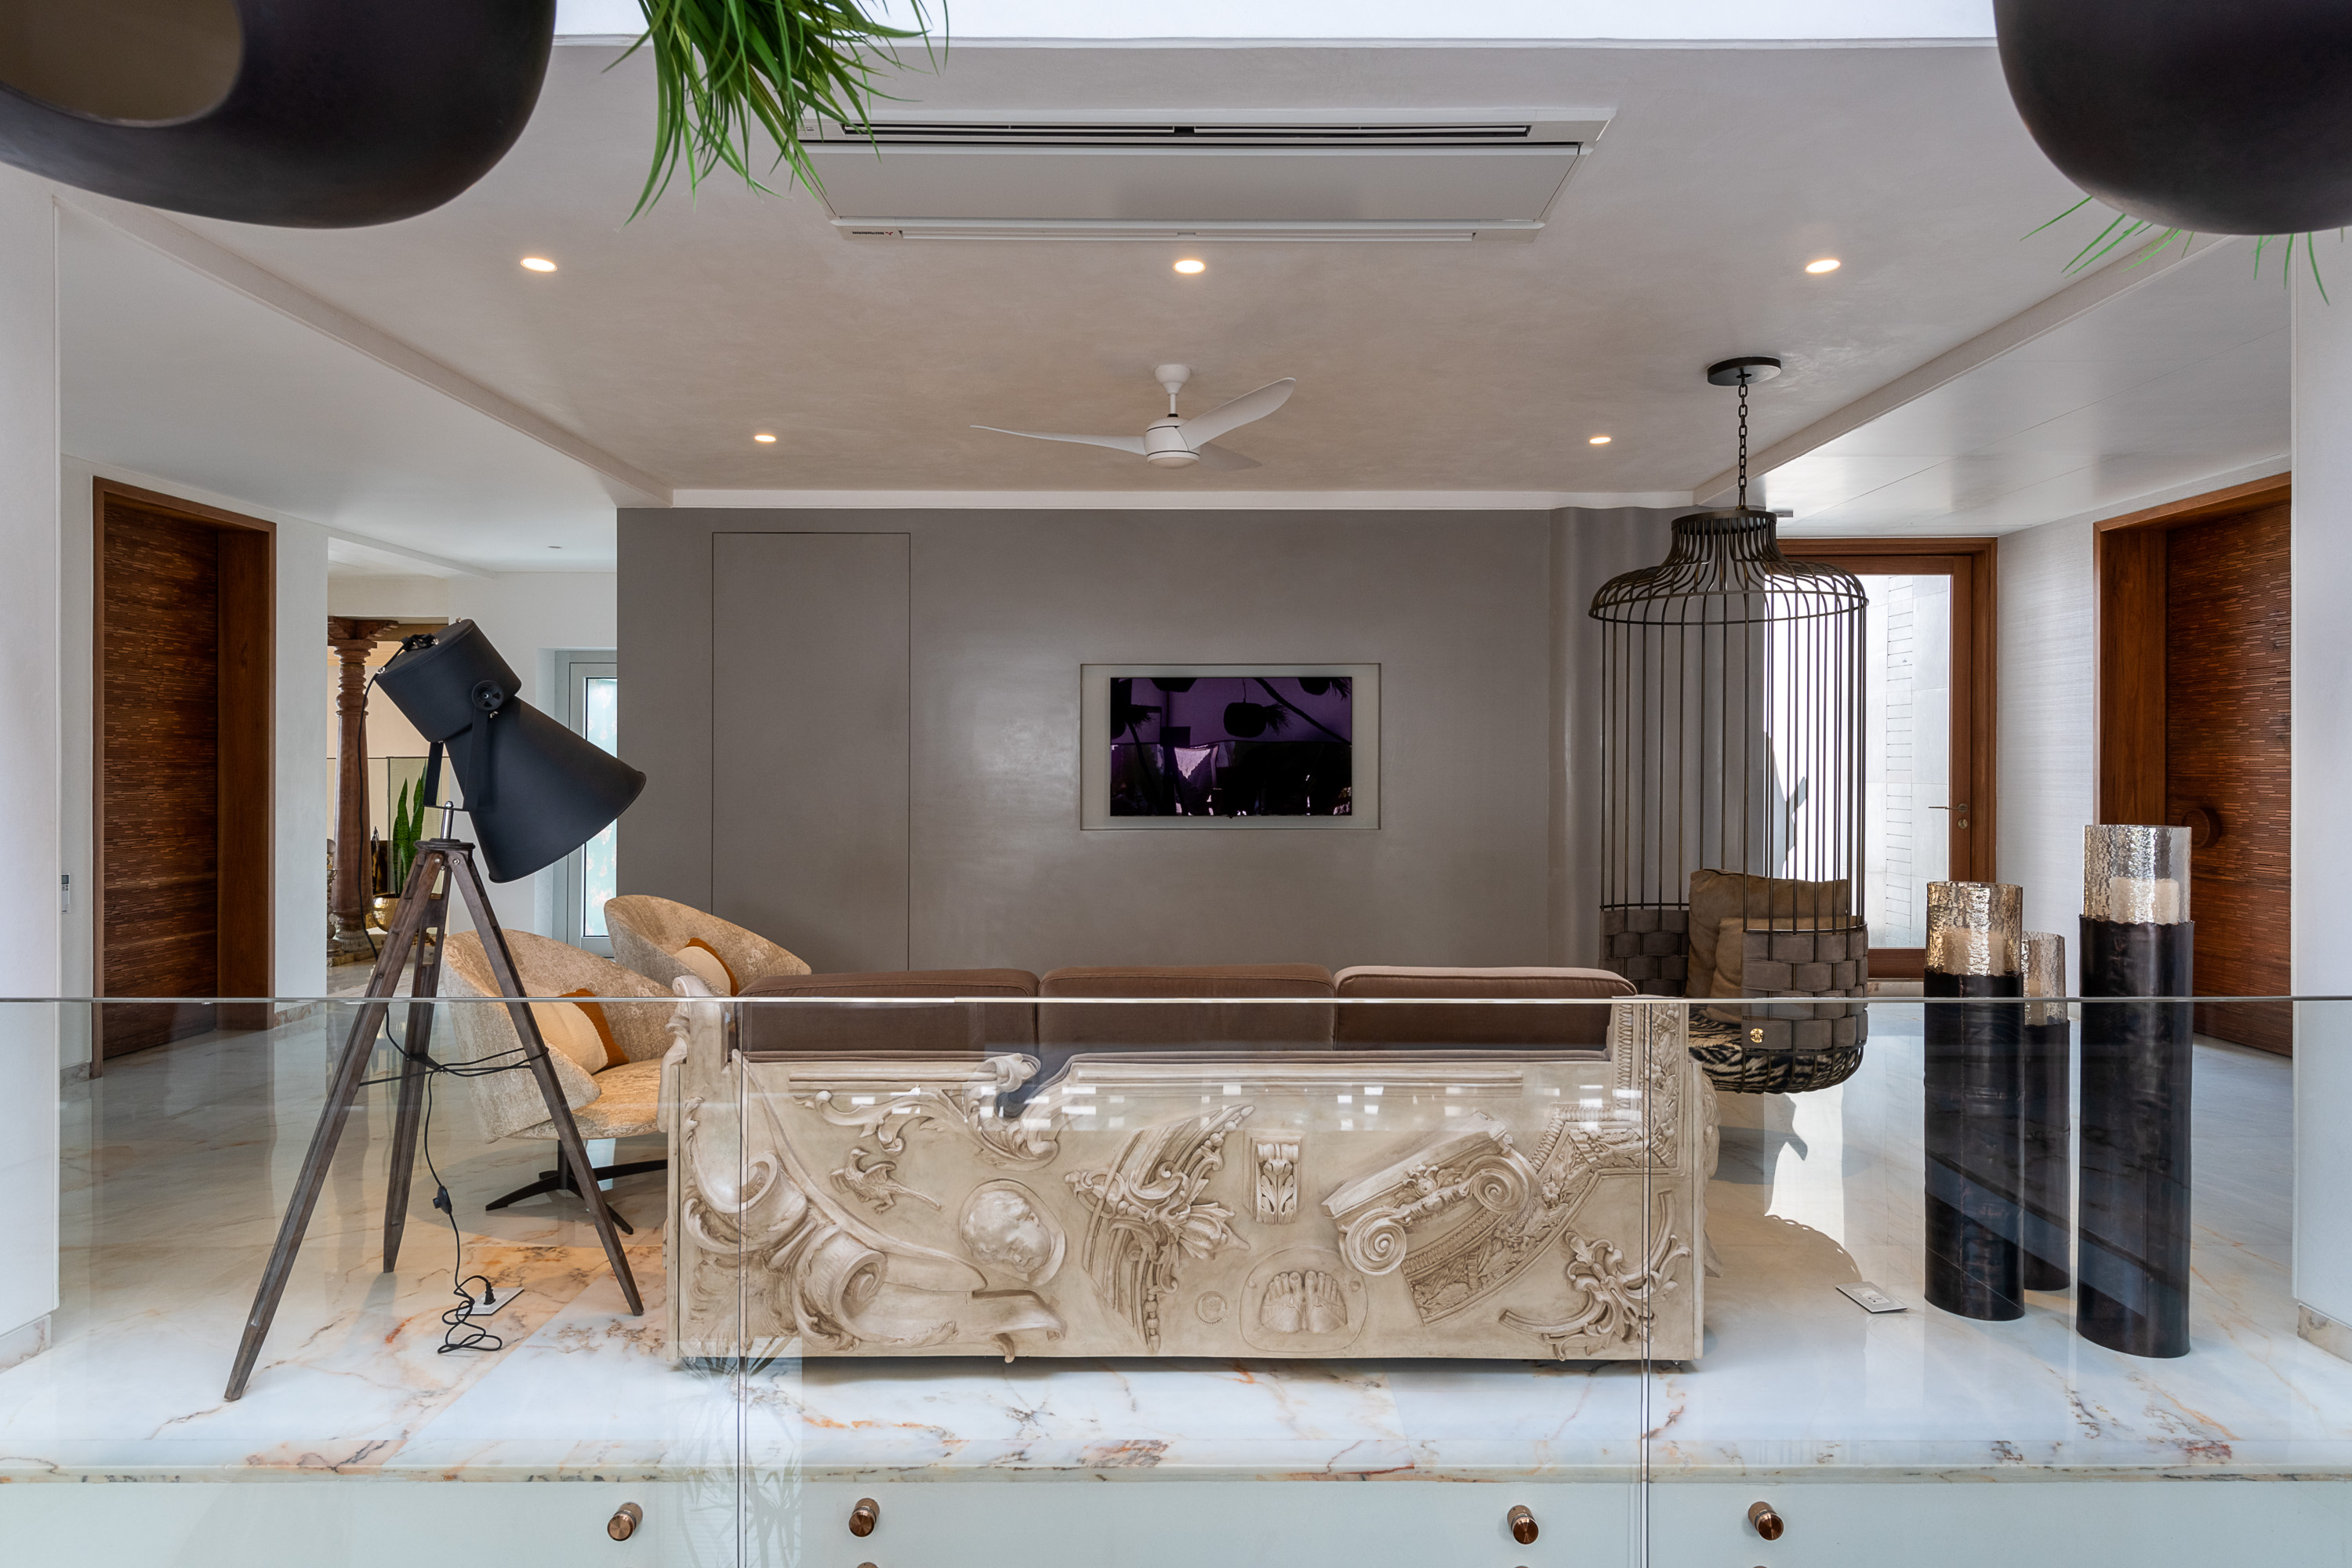 Sustainability Meets Luxury In This Private Residence by NA Architects (15) na architects NA Architects Design A Private Residence Where Copper Hues Reign Sustainability Meets Luxury In This Private Residence by NA Architects 15